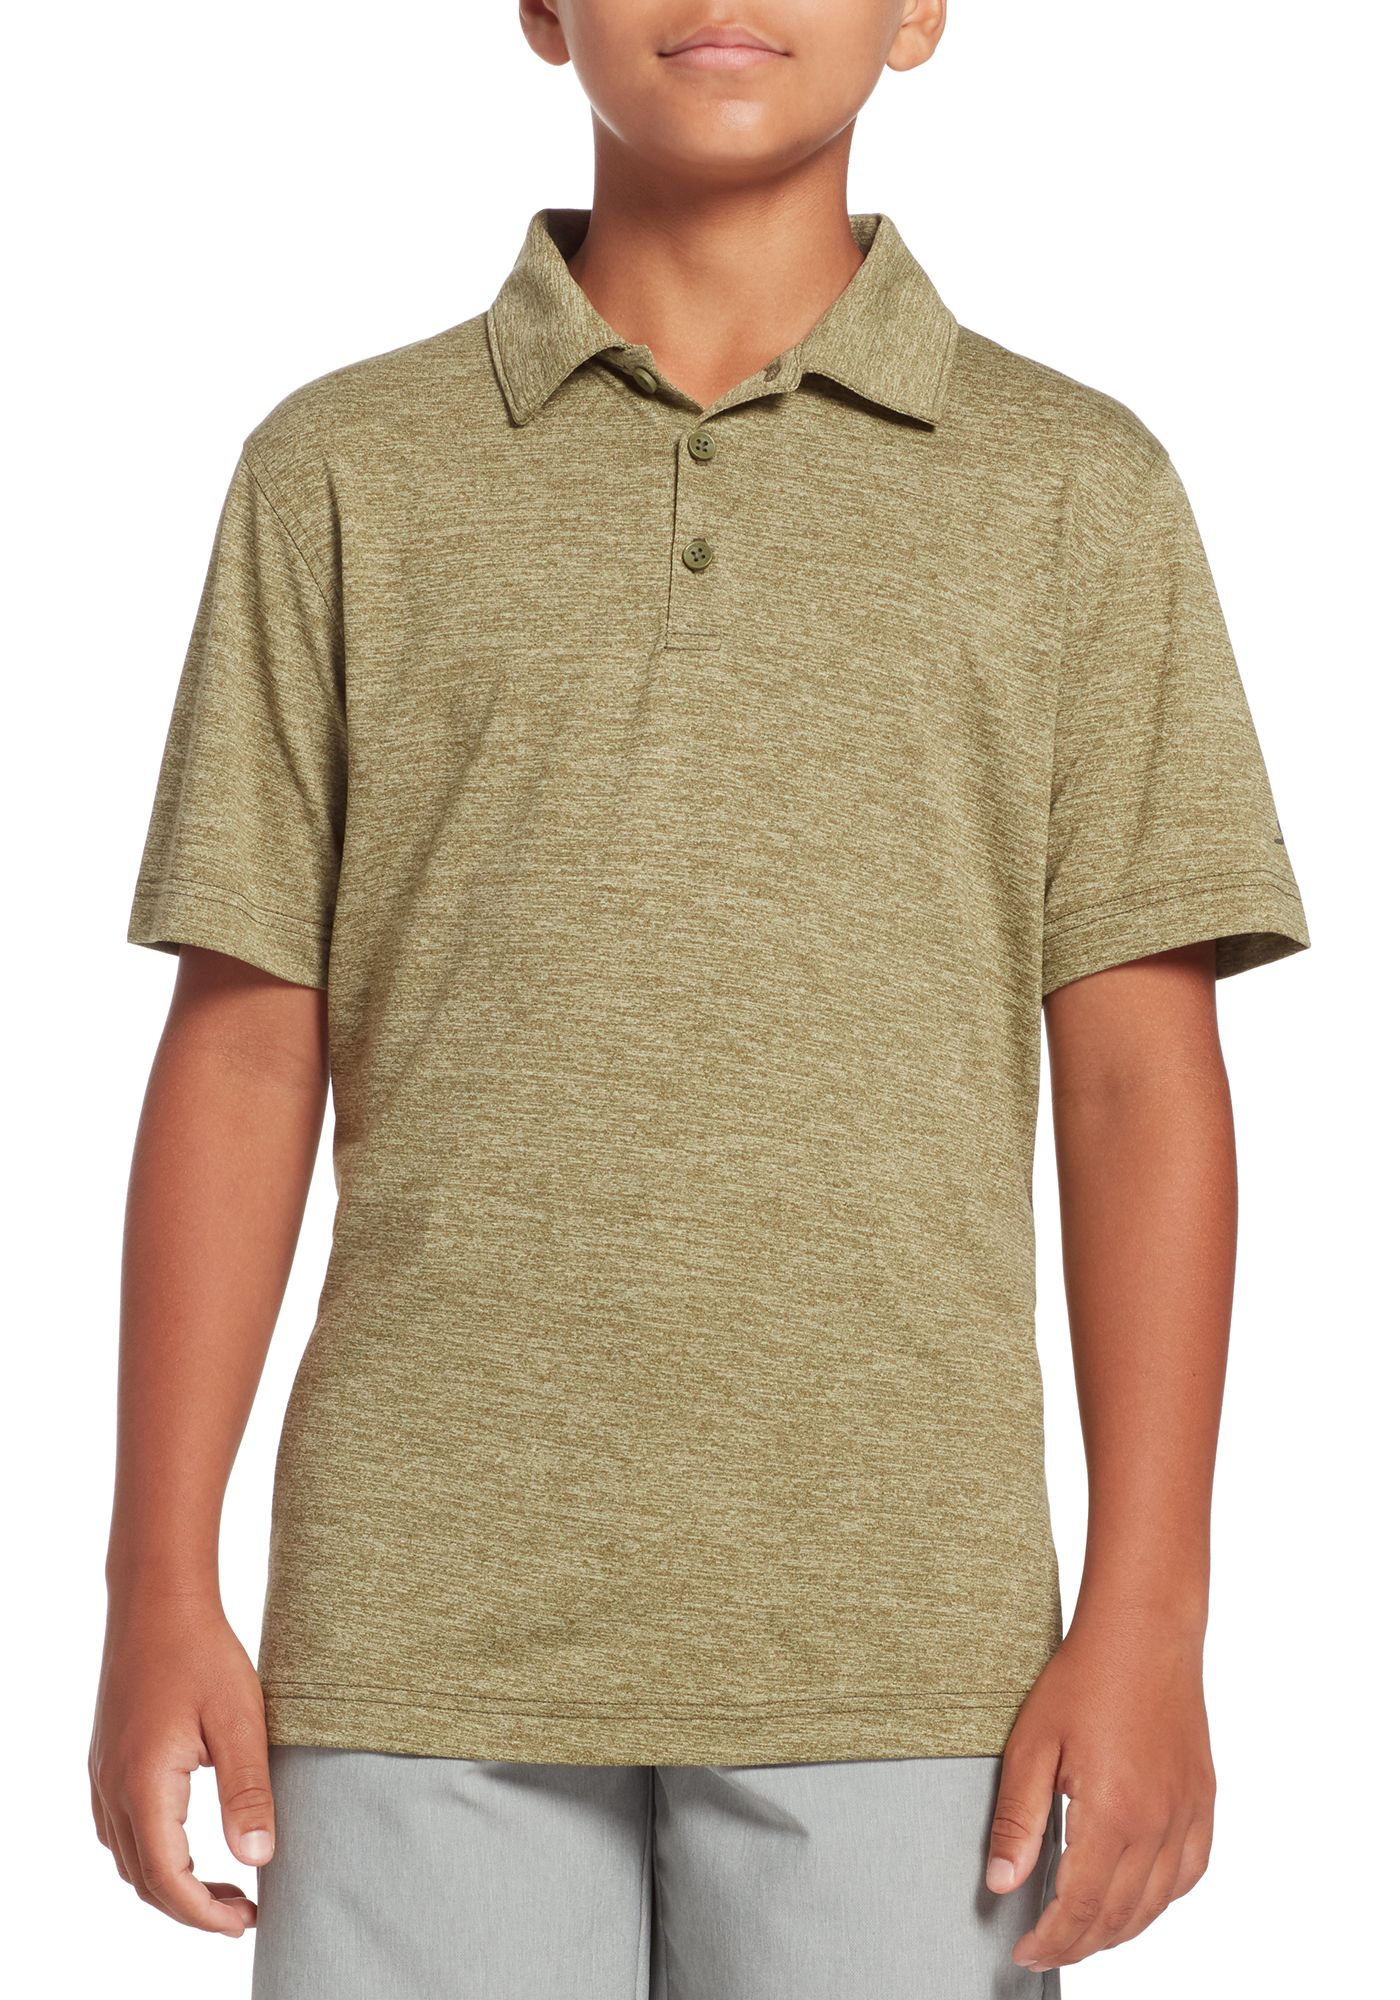 Slazenger Boys' Core Space Dye Golf Polo